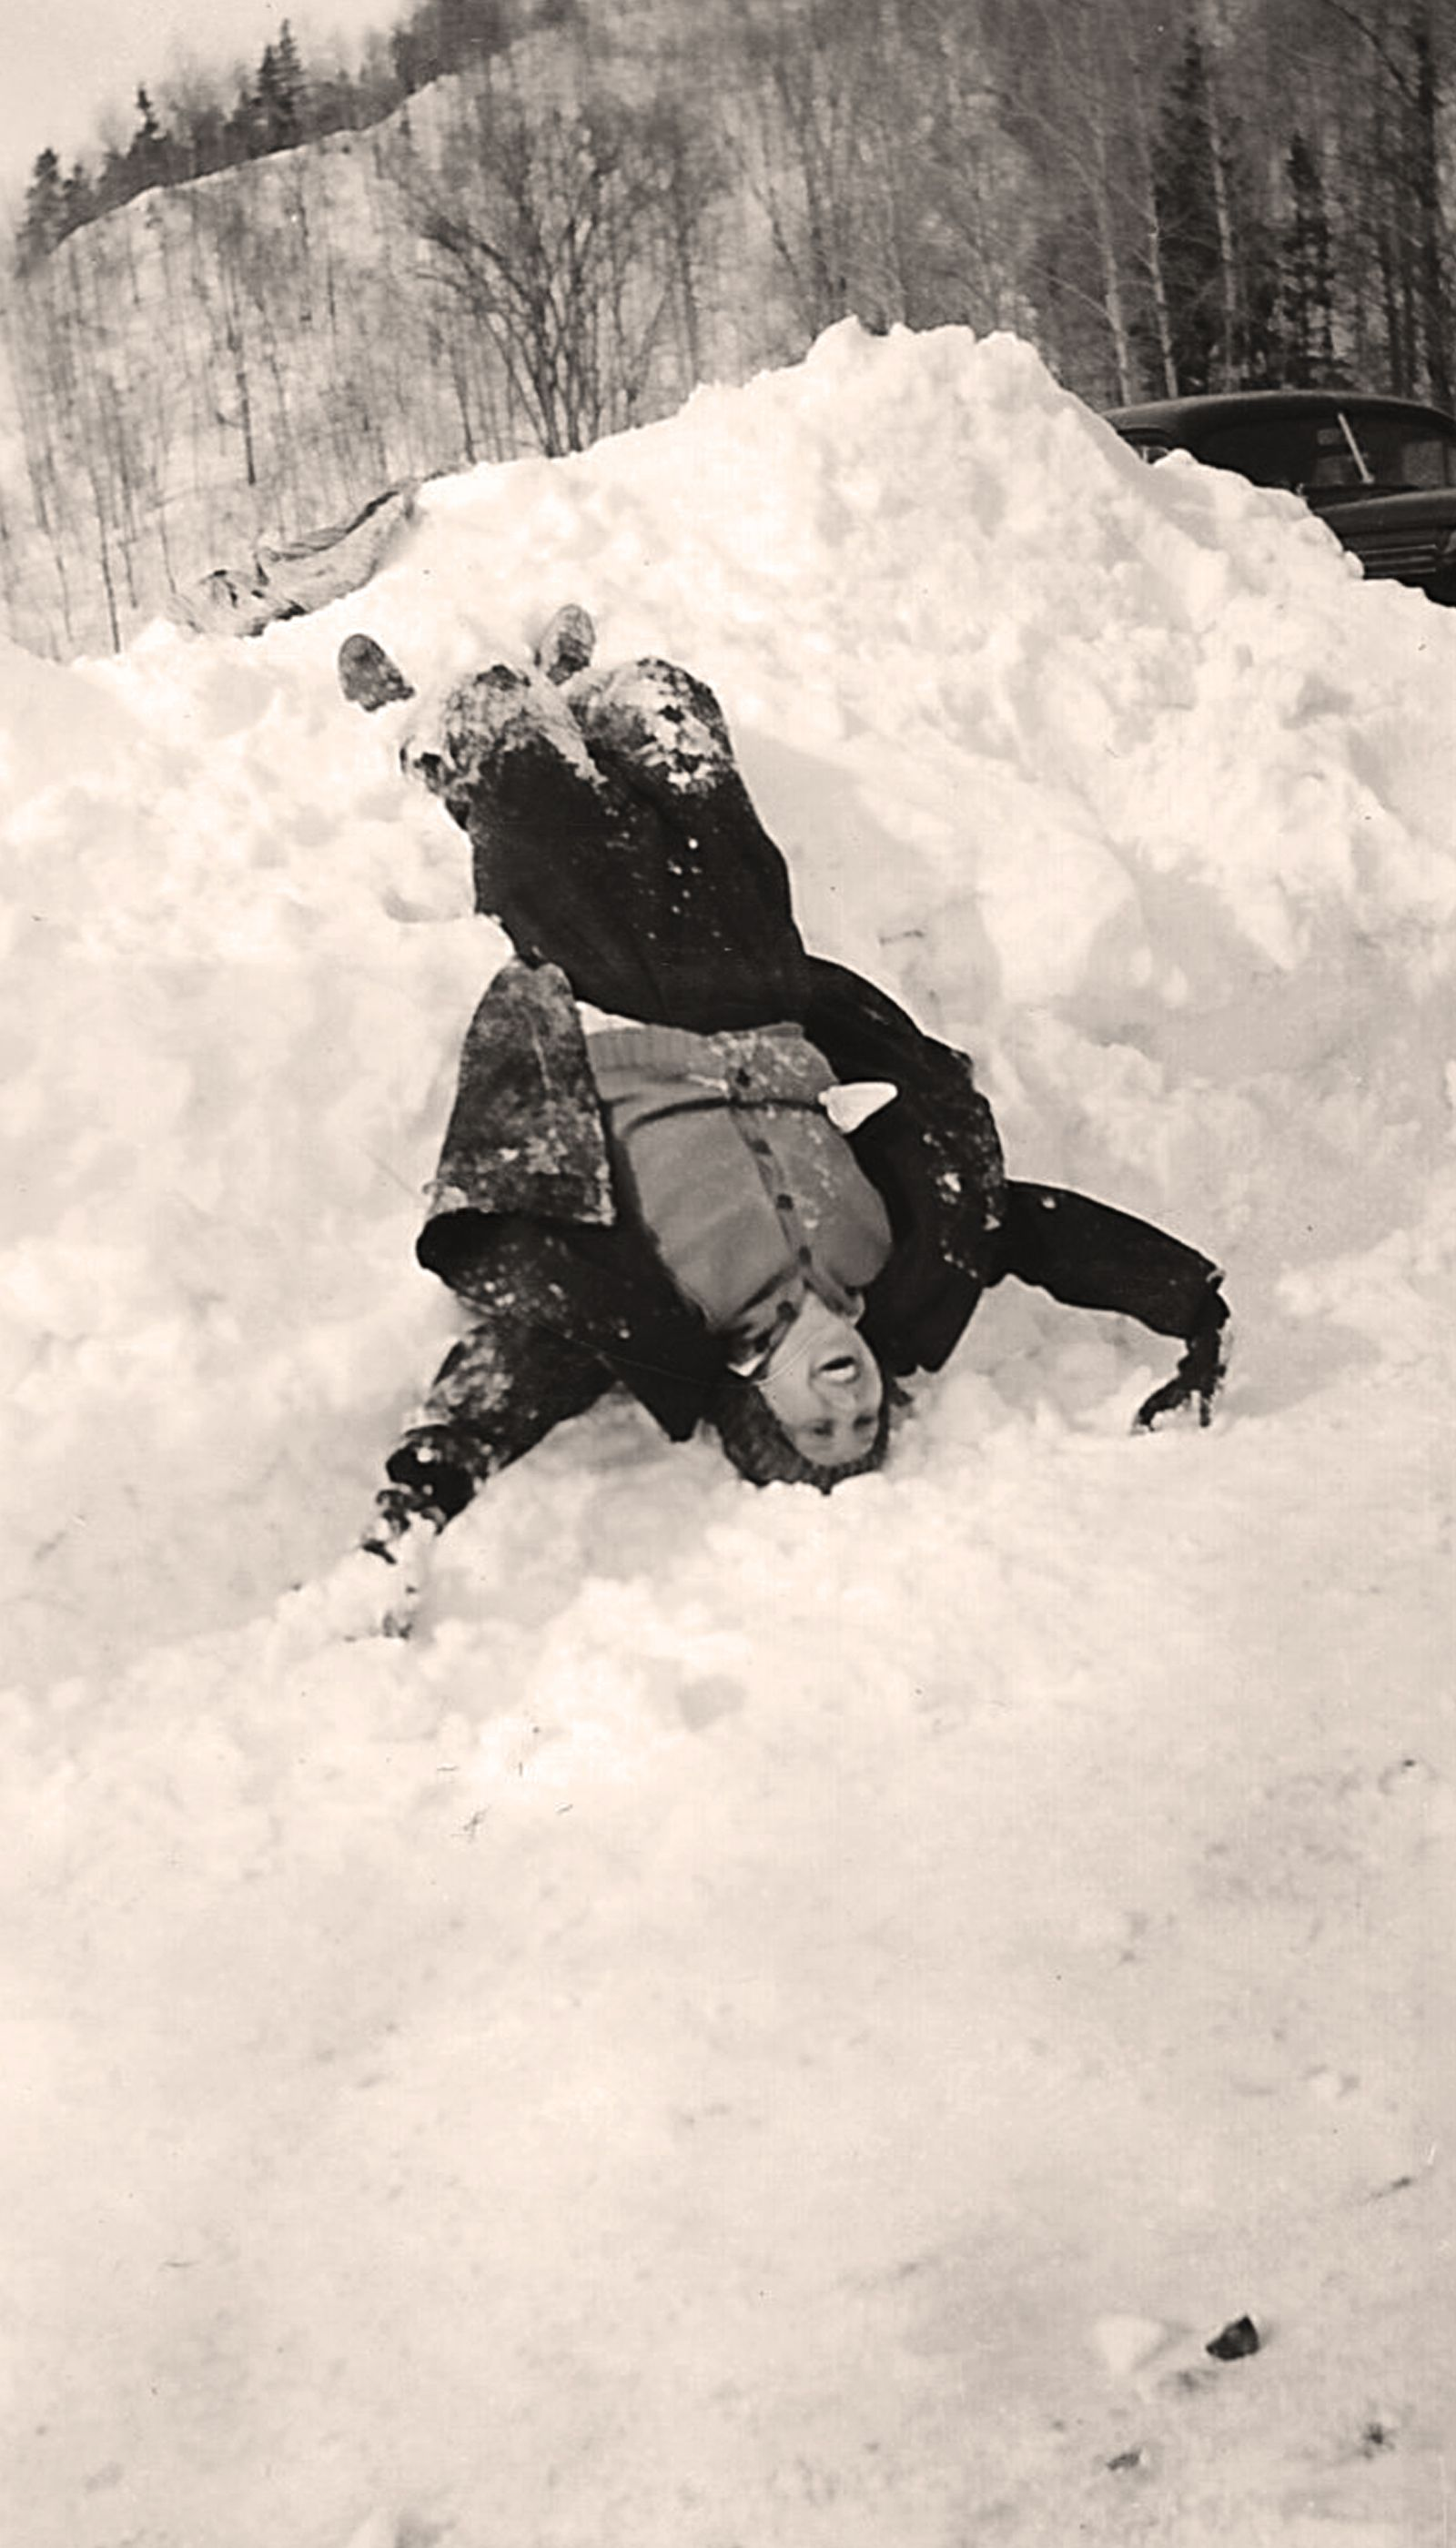 Alice Playing In The Snow At Chester Bowl Duluth Mn 1920 S Photo Courtesy Of The Nelson Family Beautiful Park Duluth Parks And Recreation